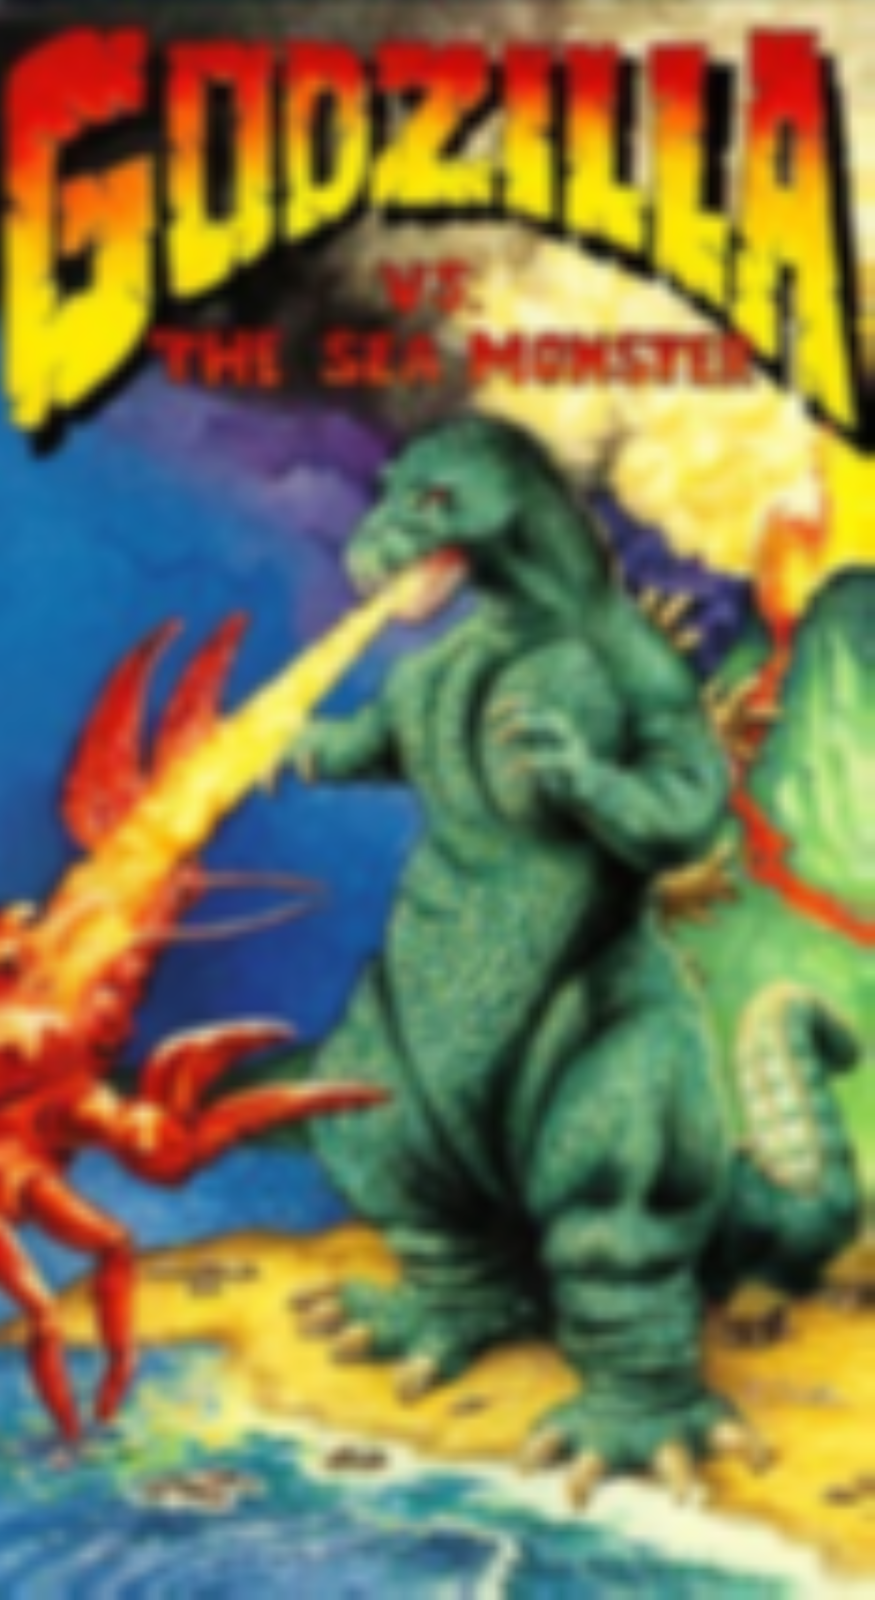 Godzilla vs. The Sea Monster Vhs